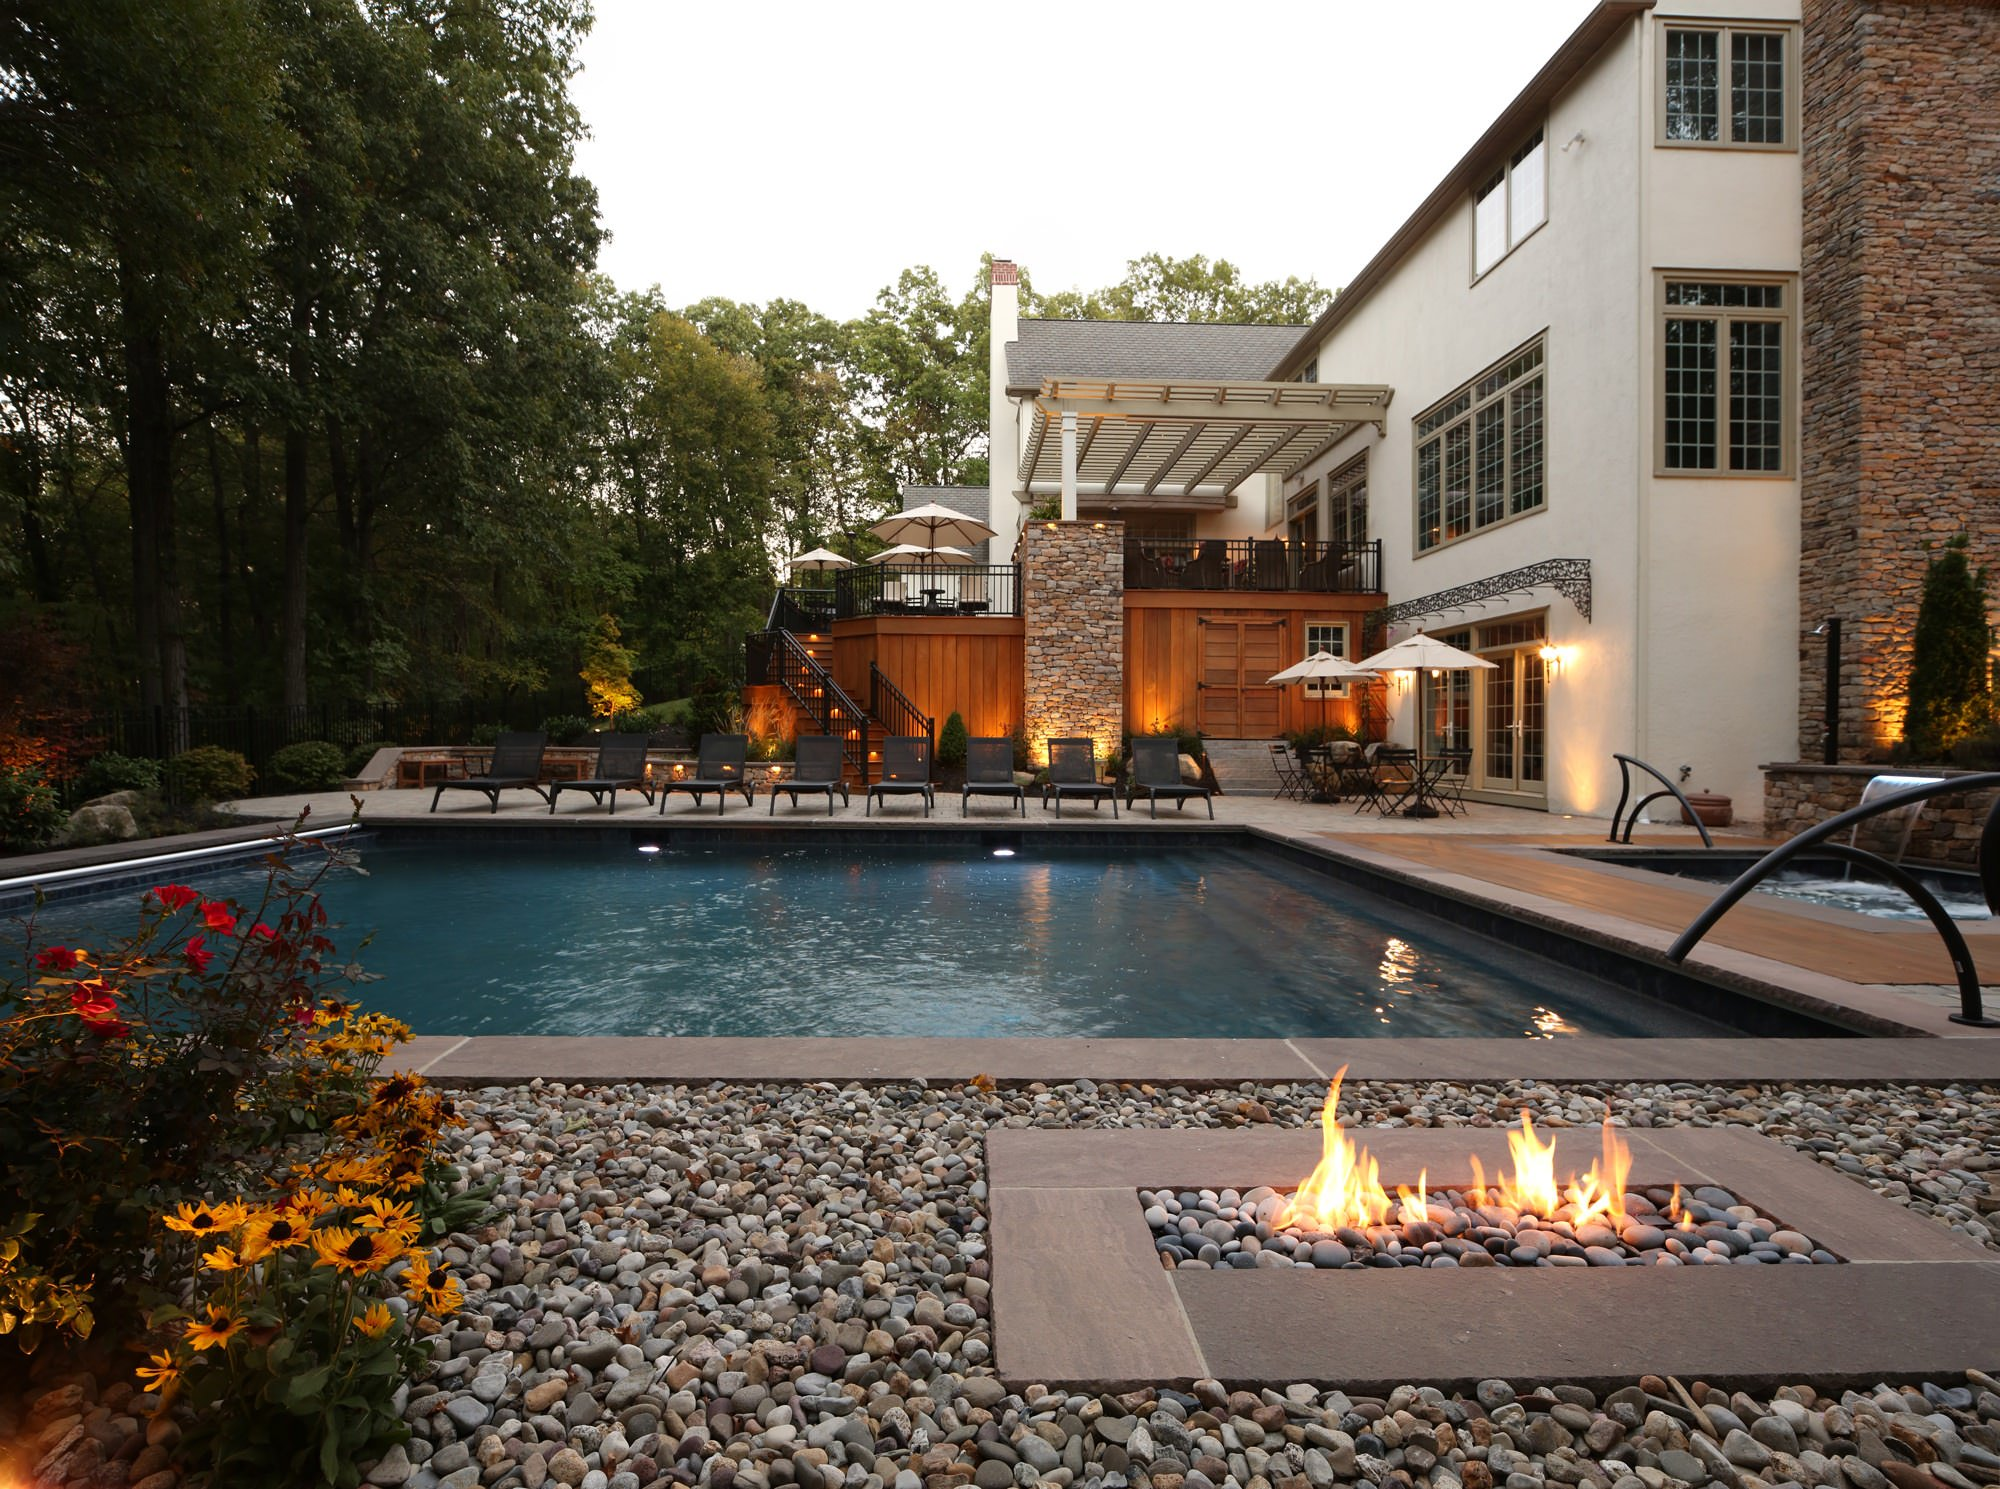 Earth, fire and water all combine to bring the hidden magnificence back to this property, creating the most outstanding oasis!